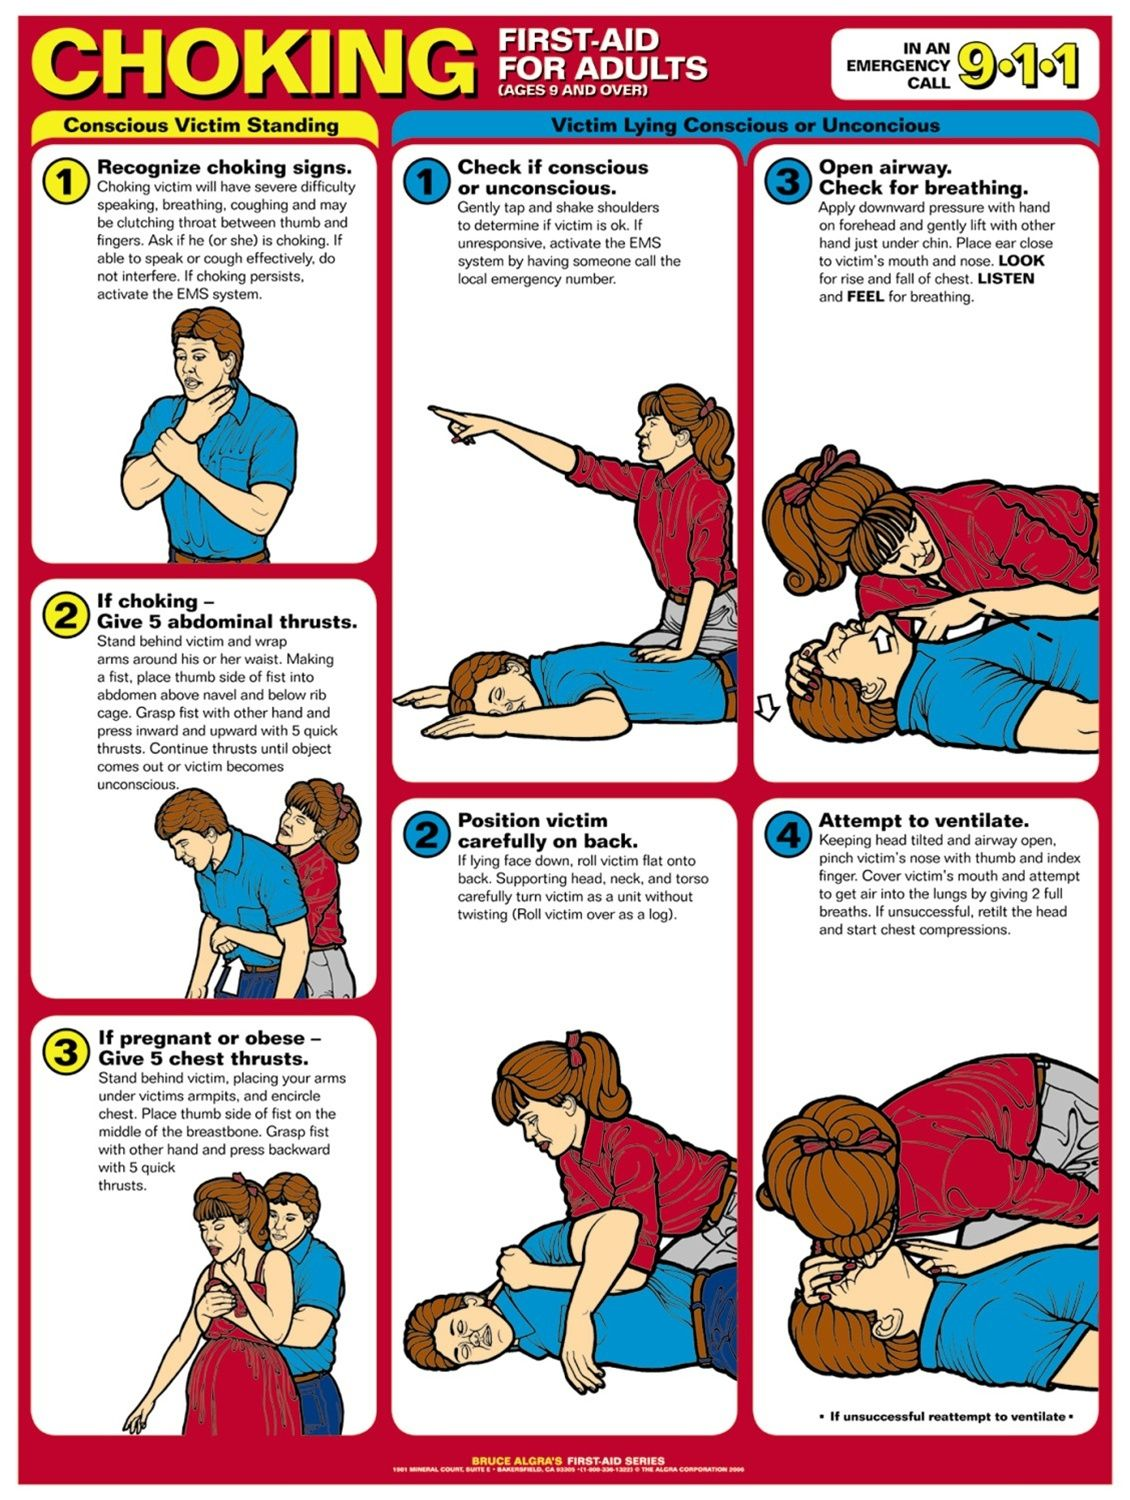 Printable First Aid And Cpr Choking First Aid First Aid